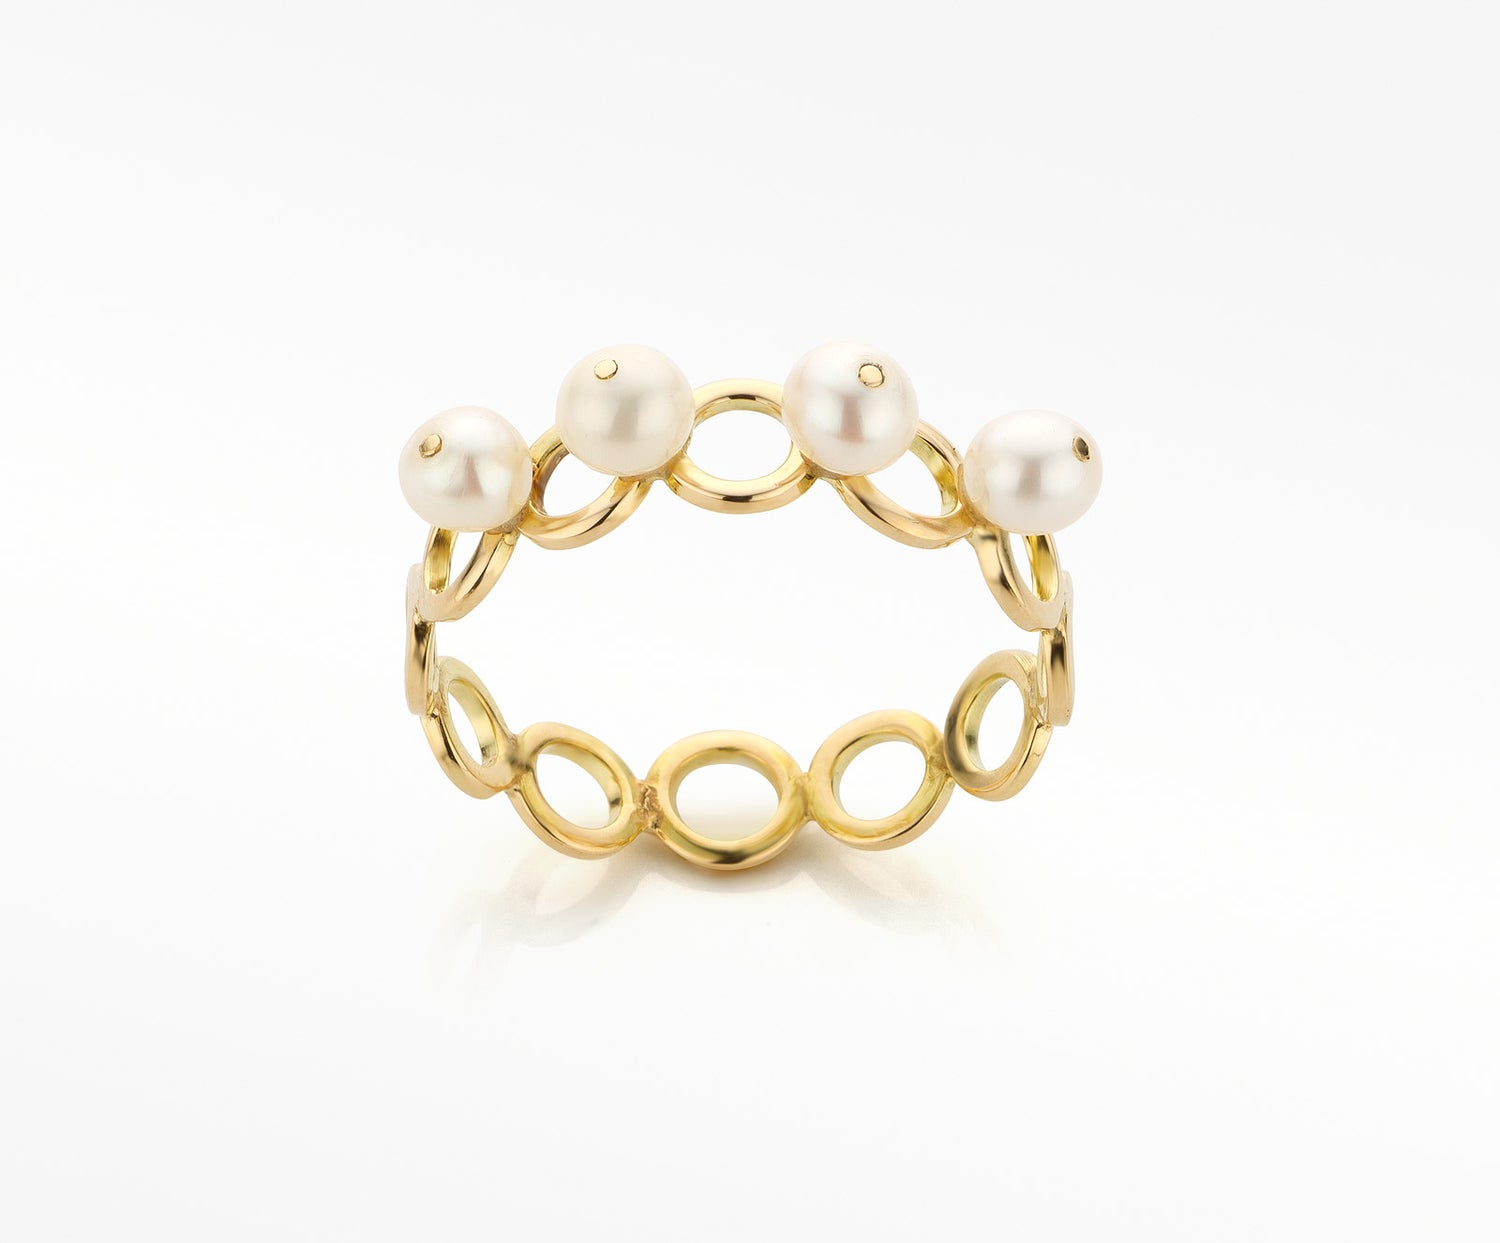 Image of 'Pearl' ring in gold and white pearls - ring in goud en parels